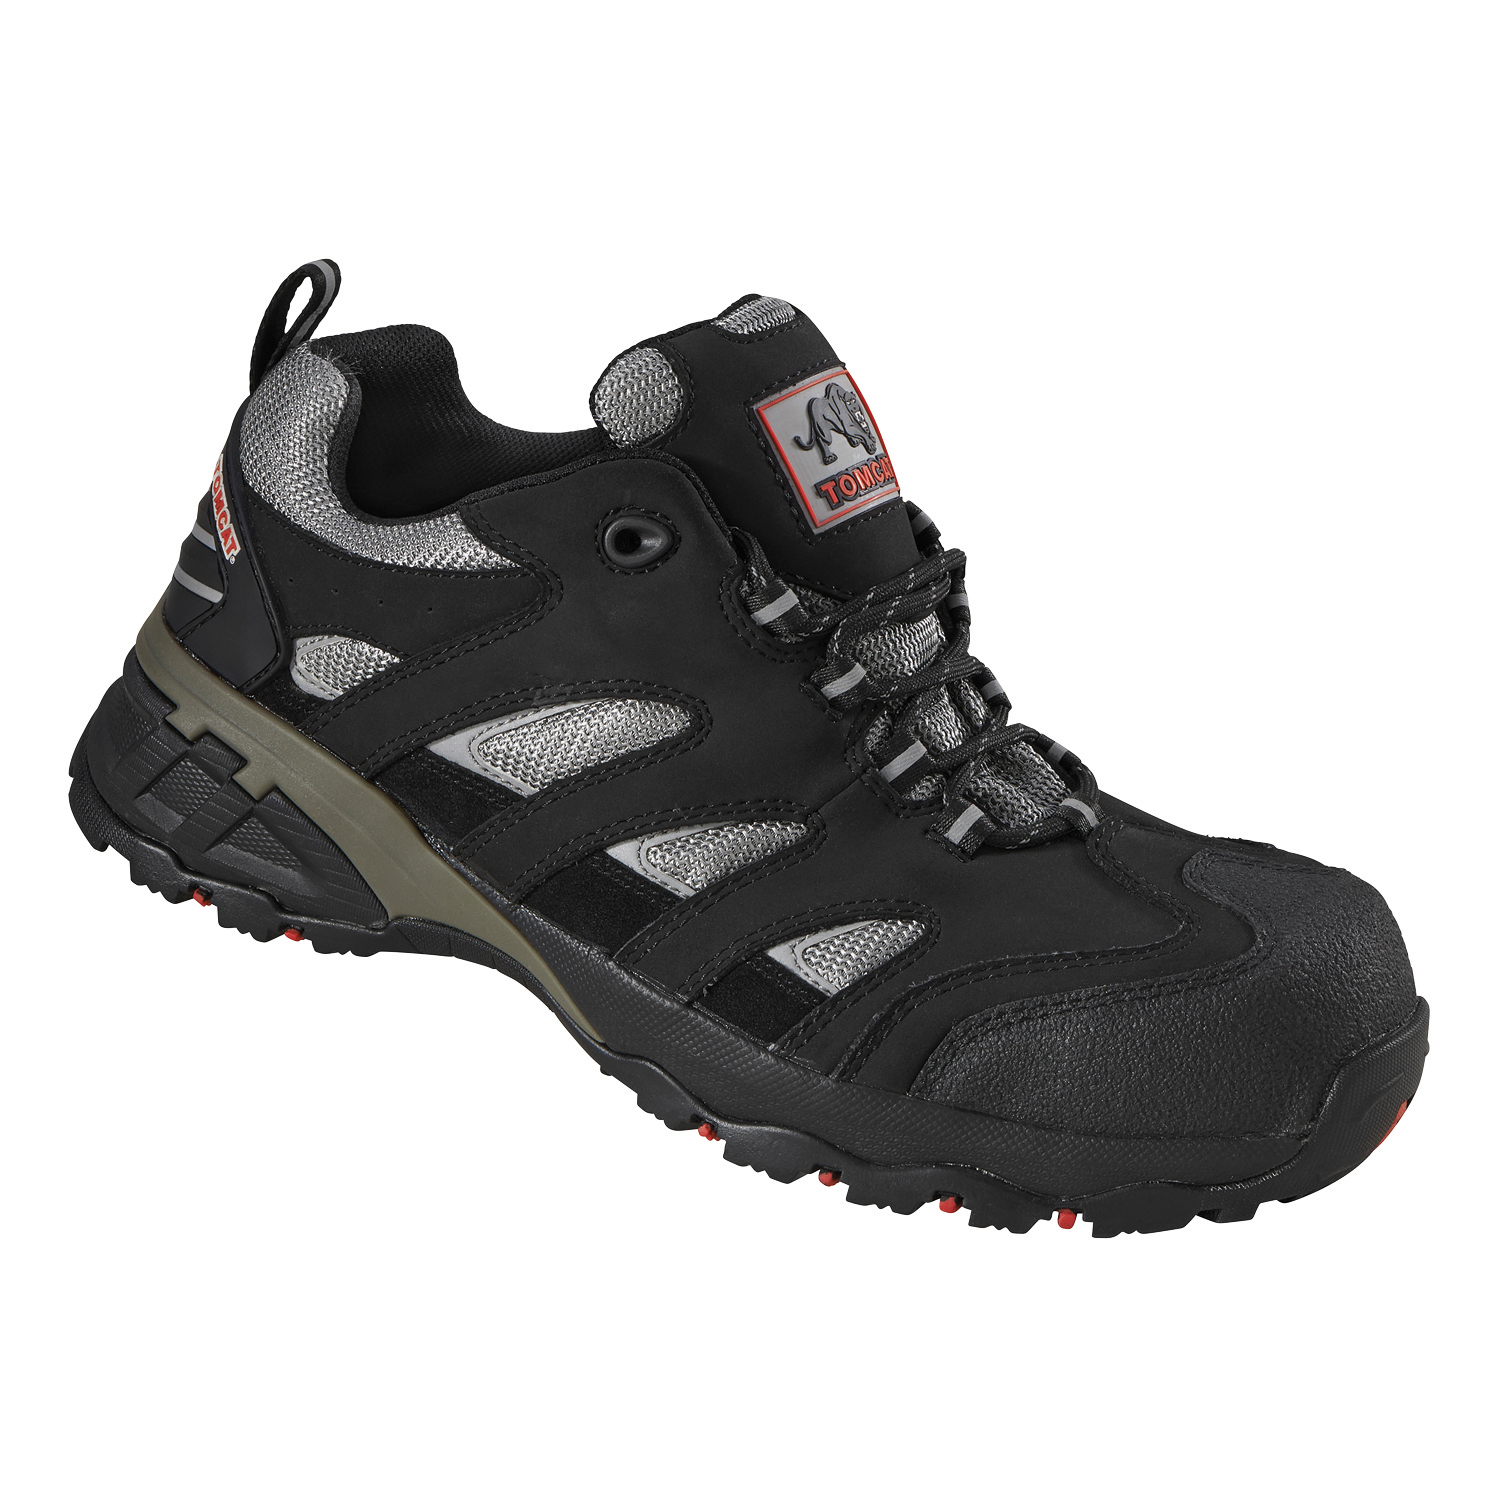 Rockfall Maine Trainer F/Glass Toecap & Flexi-Midsole Size 6 Black/Silver Ref TC130-6 *5-7 Day Leadtime*